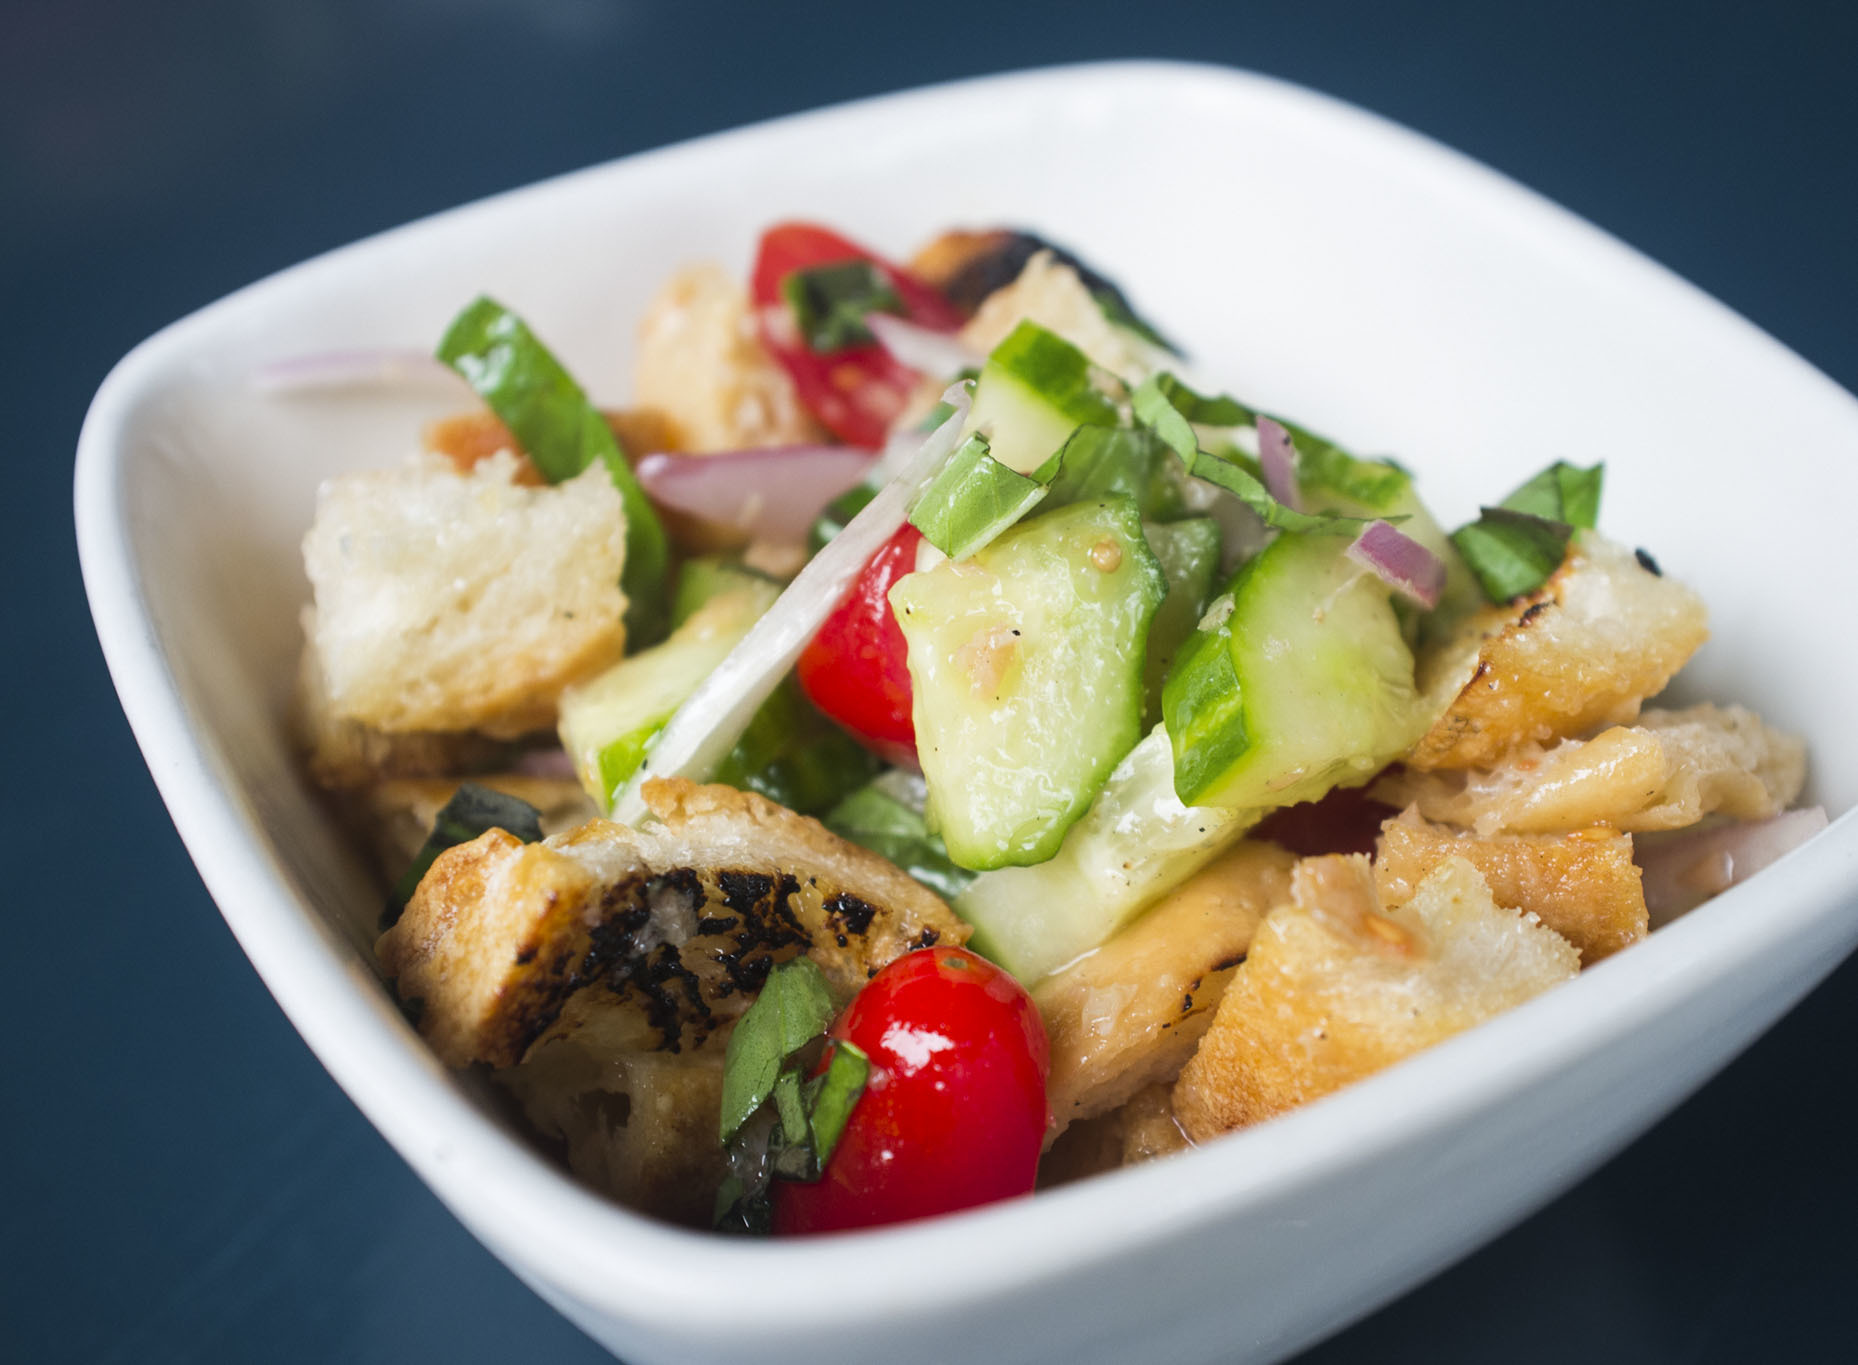 Panzanella Salad from Mana Food Bar